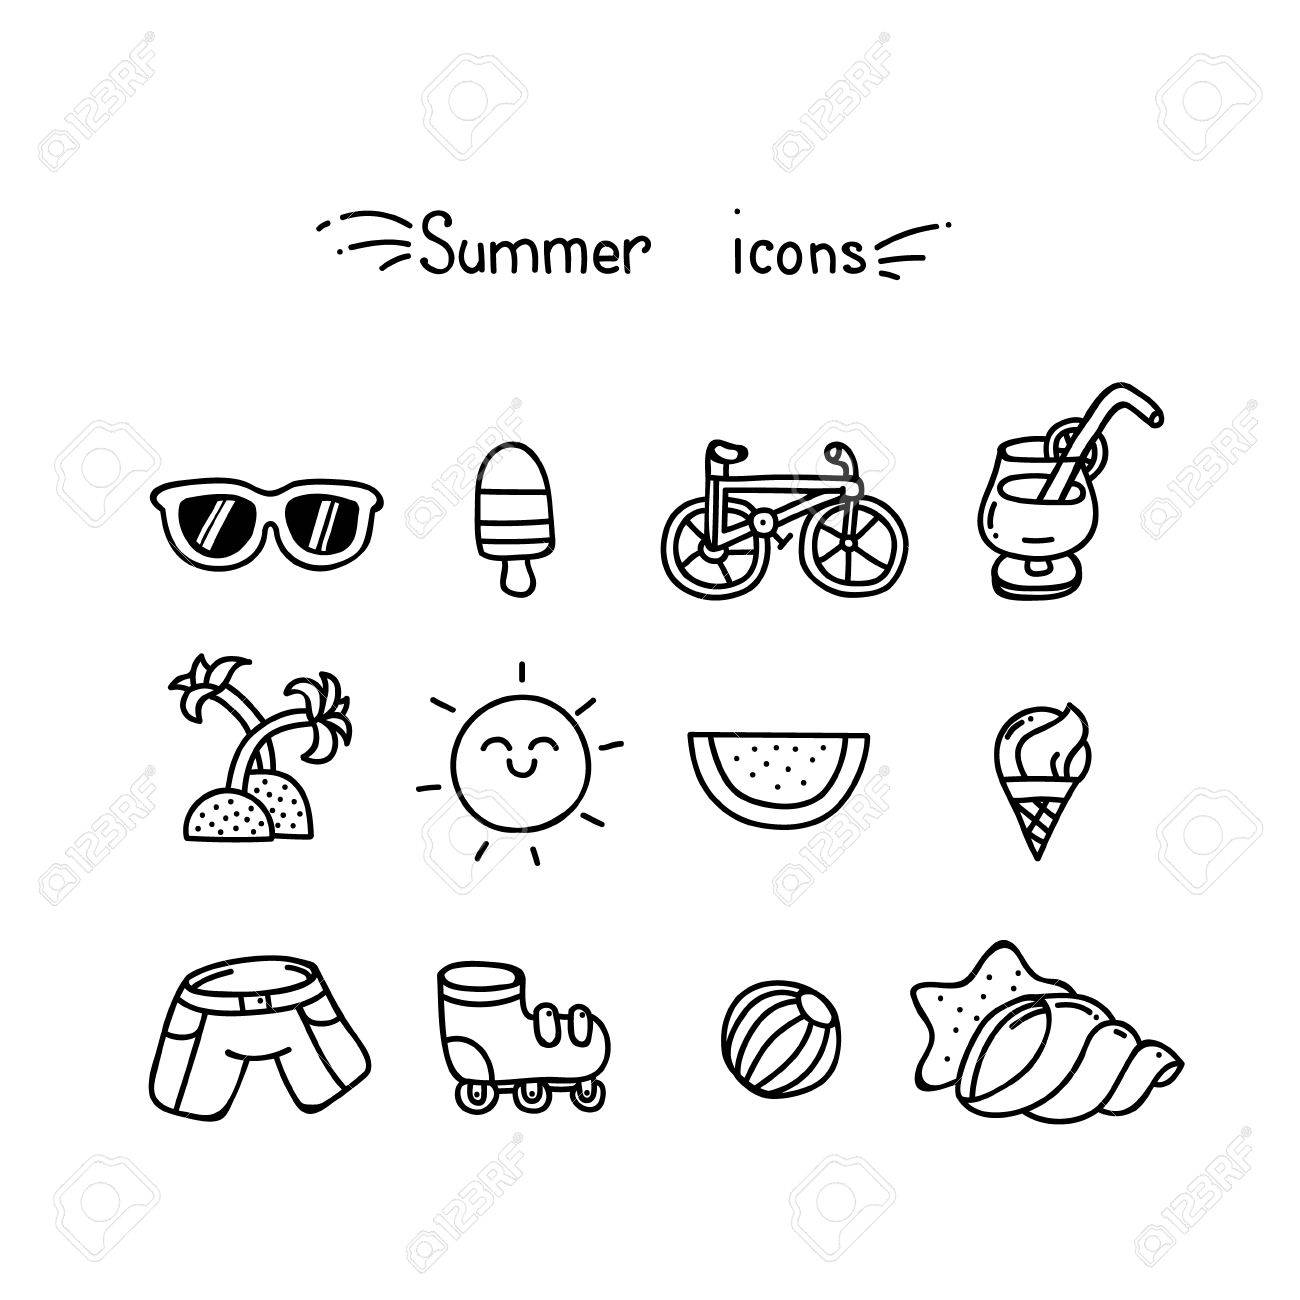 set of cute summer icons black outline royalty free cliparts vectors and stock illustration image 51331223 set of cute summer icons black outline